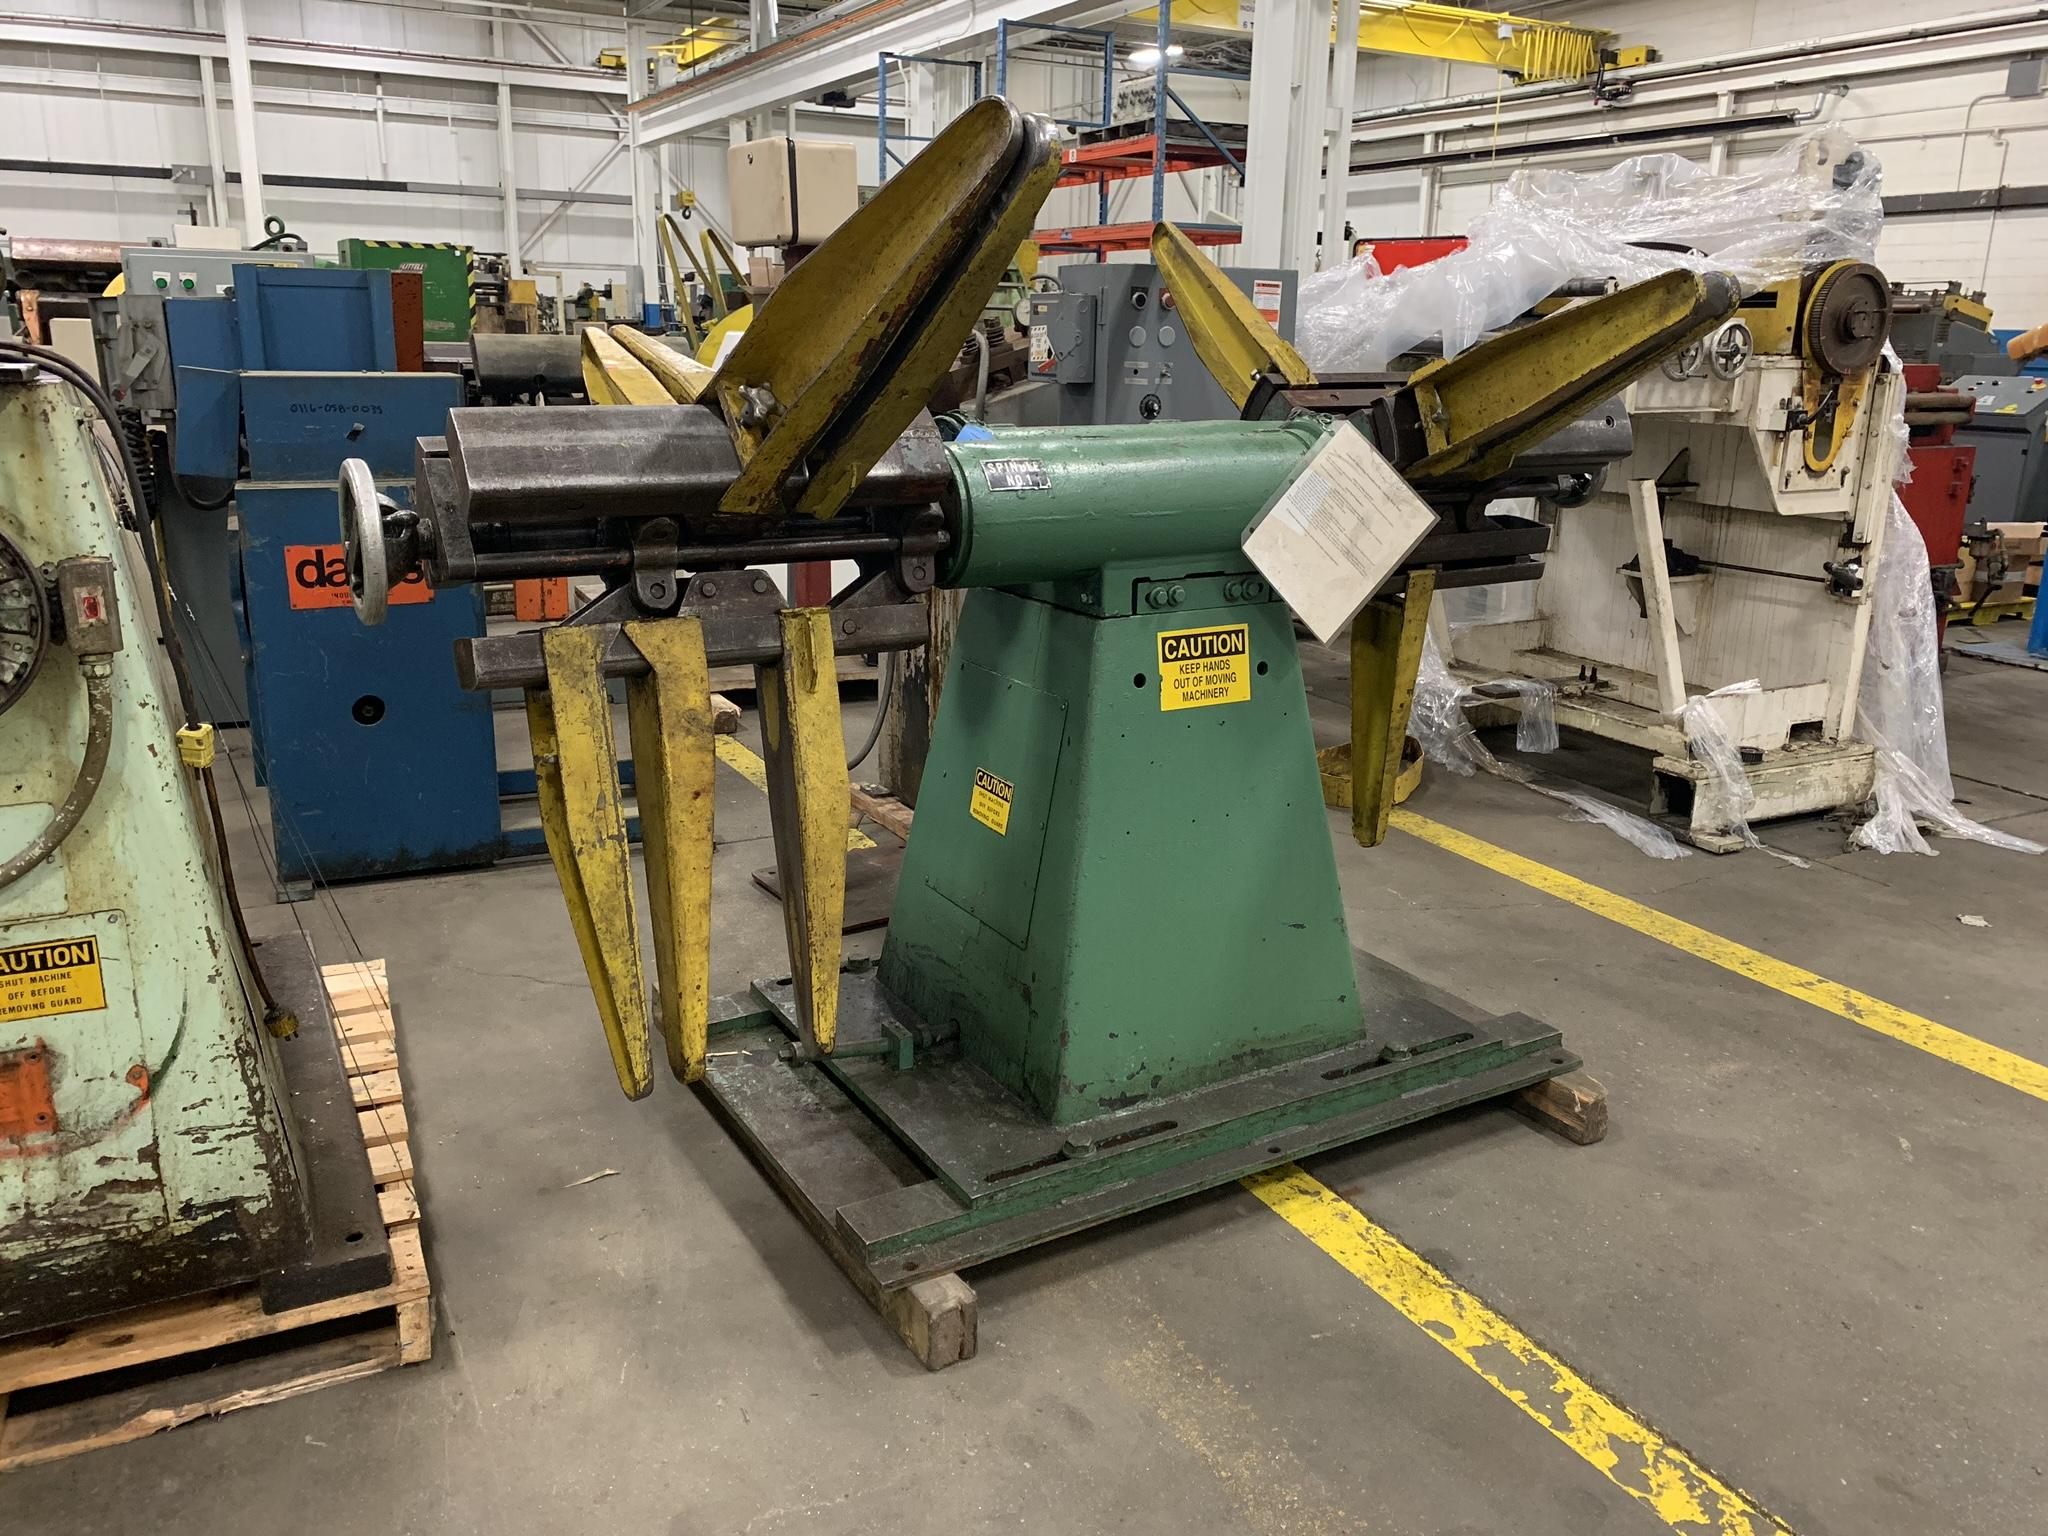 CWP (Pull-Off) Double End Reel 2500 LBS x 12